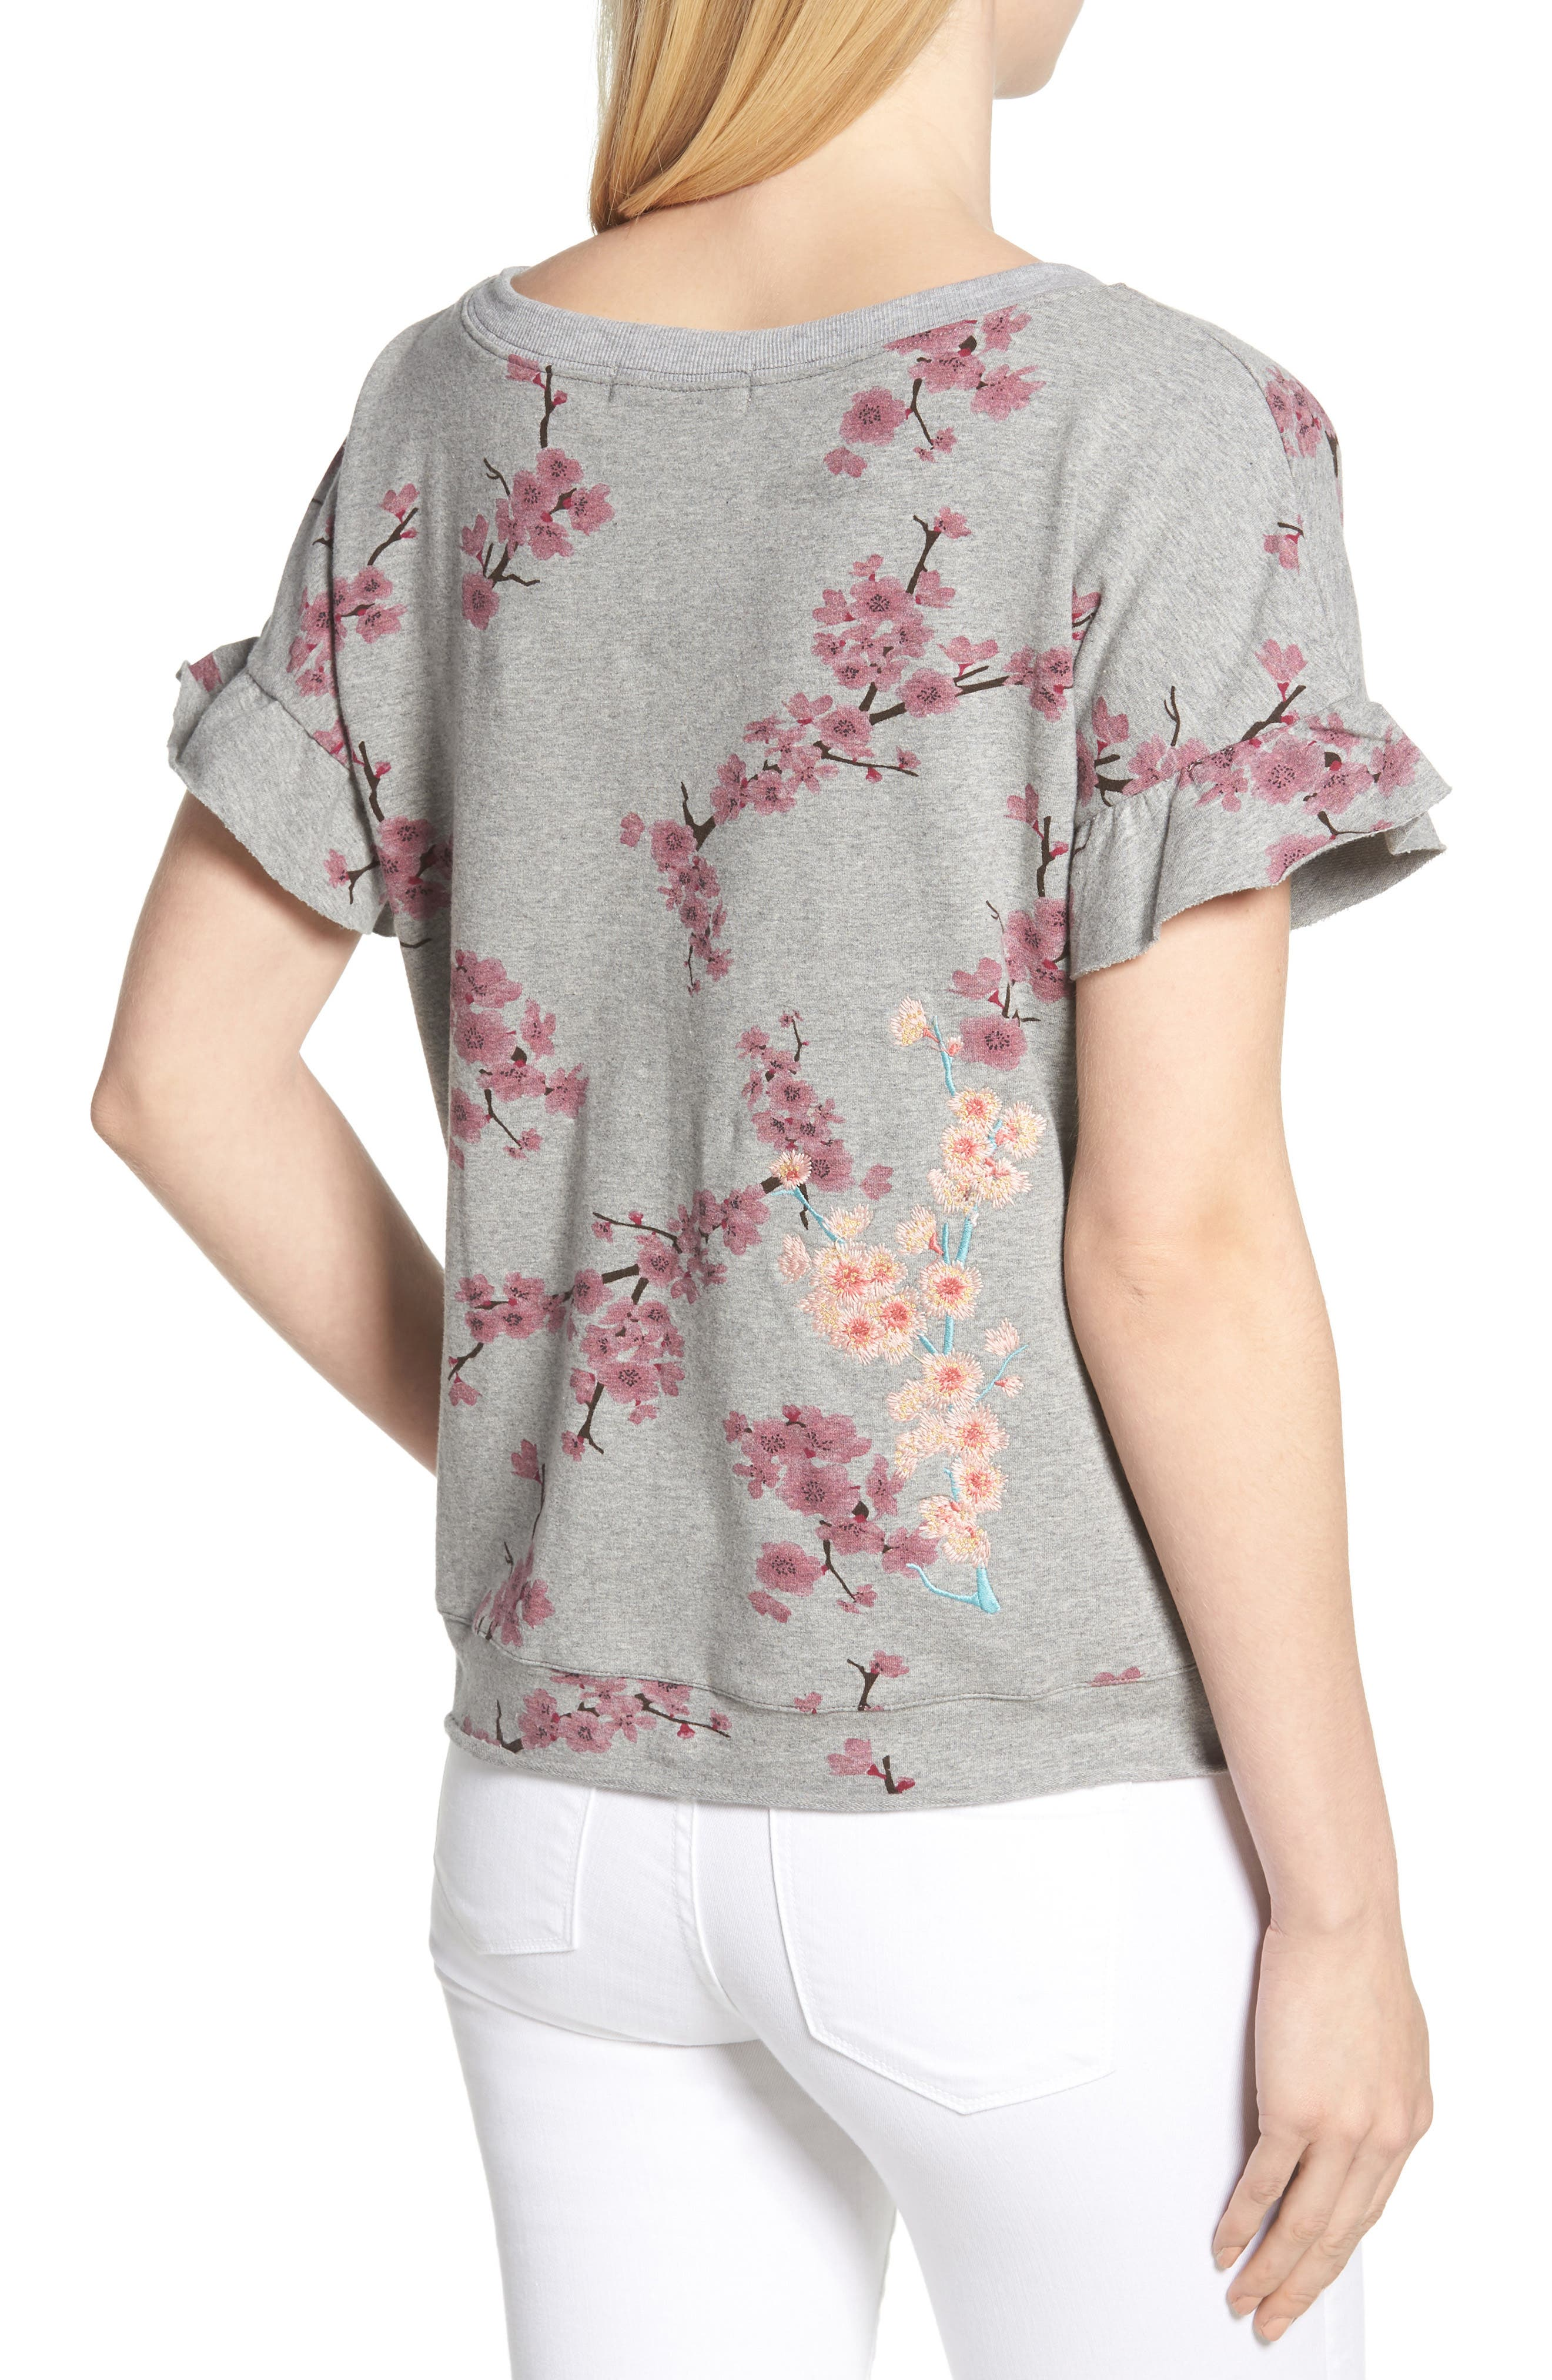 Short Sleeve Lace Up Cherry Blossom Sweatshirt,                             Alternate thumbnail 2, color,                             Grey Cherry Blossom